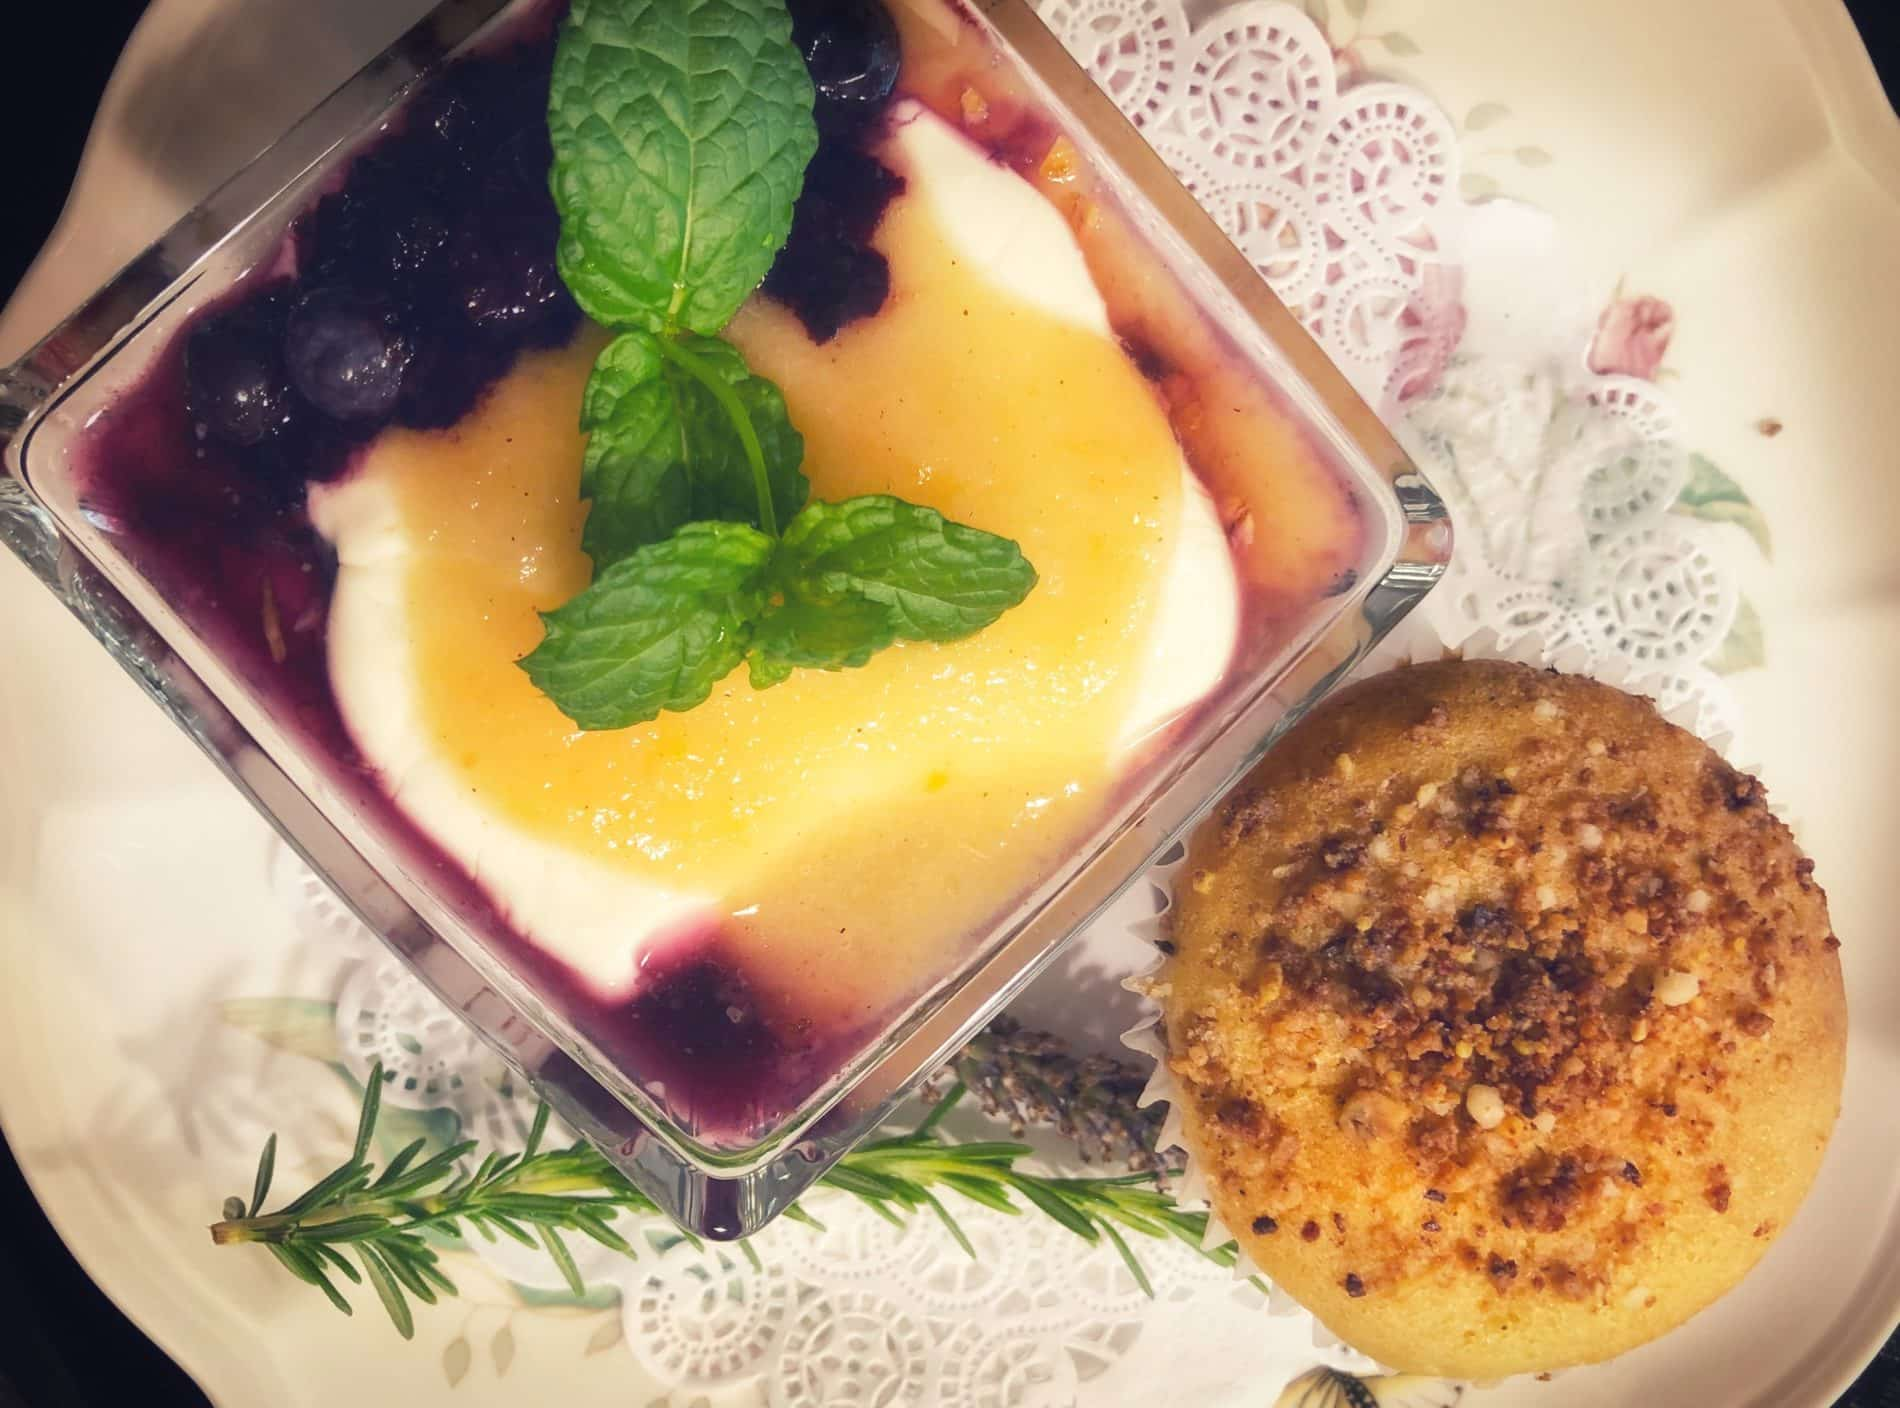 Breakfast Muffin with Fruit Parfait